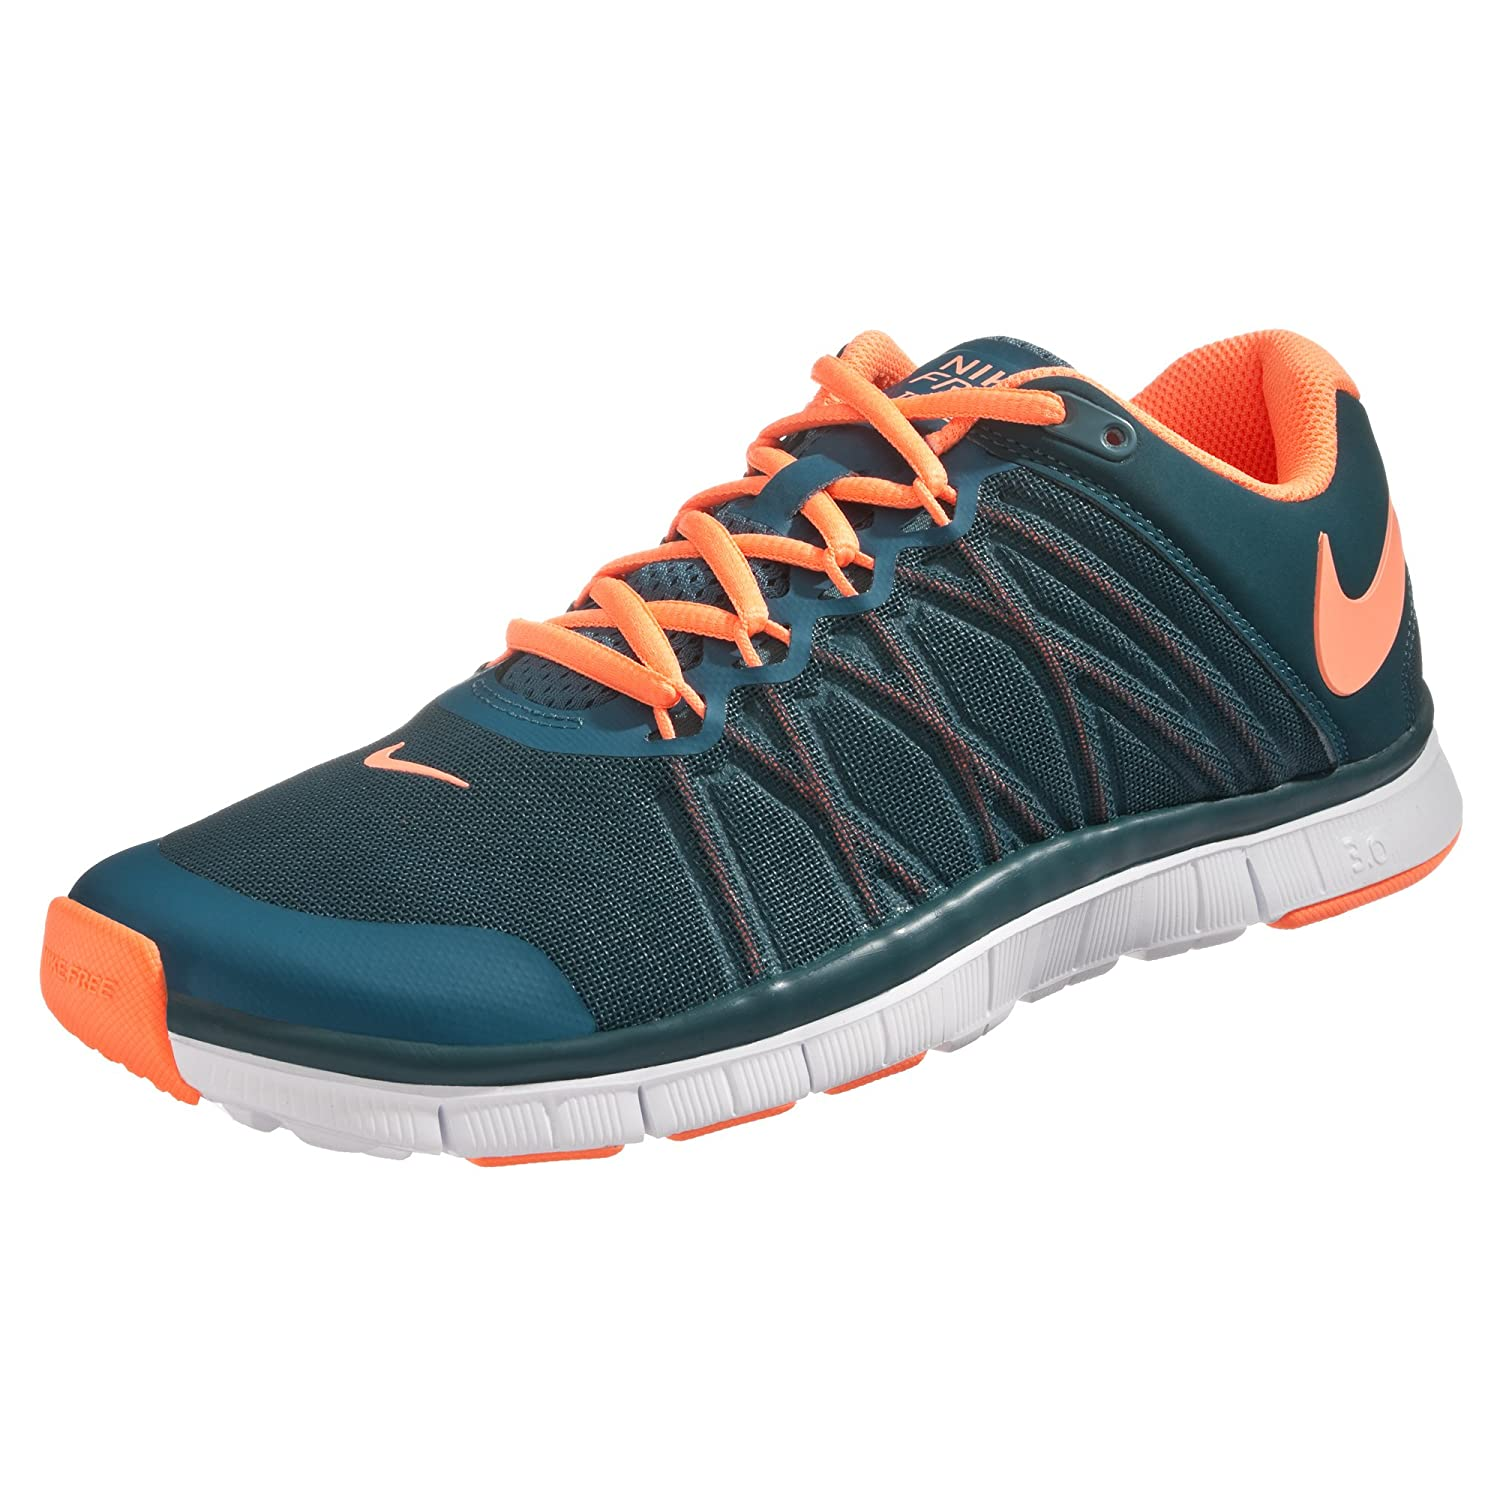 huge discount b6836 6e7a8 nike free trainer 3.0 mens running trainers 630856 300 sneakers shoes (uk 6  us 7 eu 40)  Amazon.co.uk  Shoes   Bags